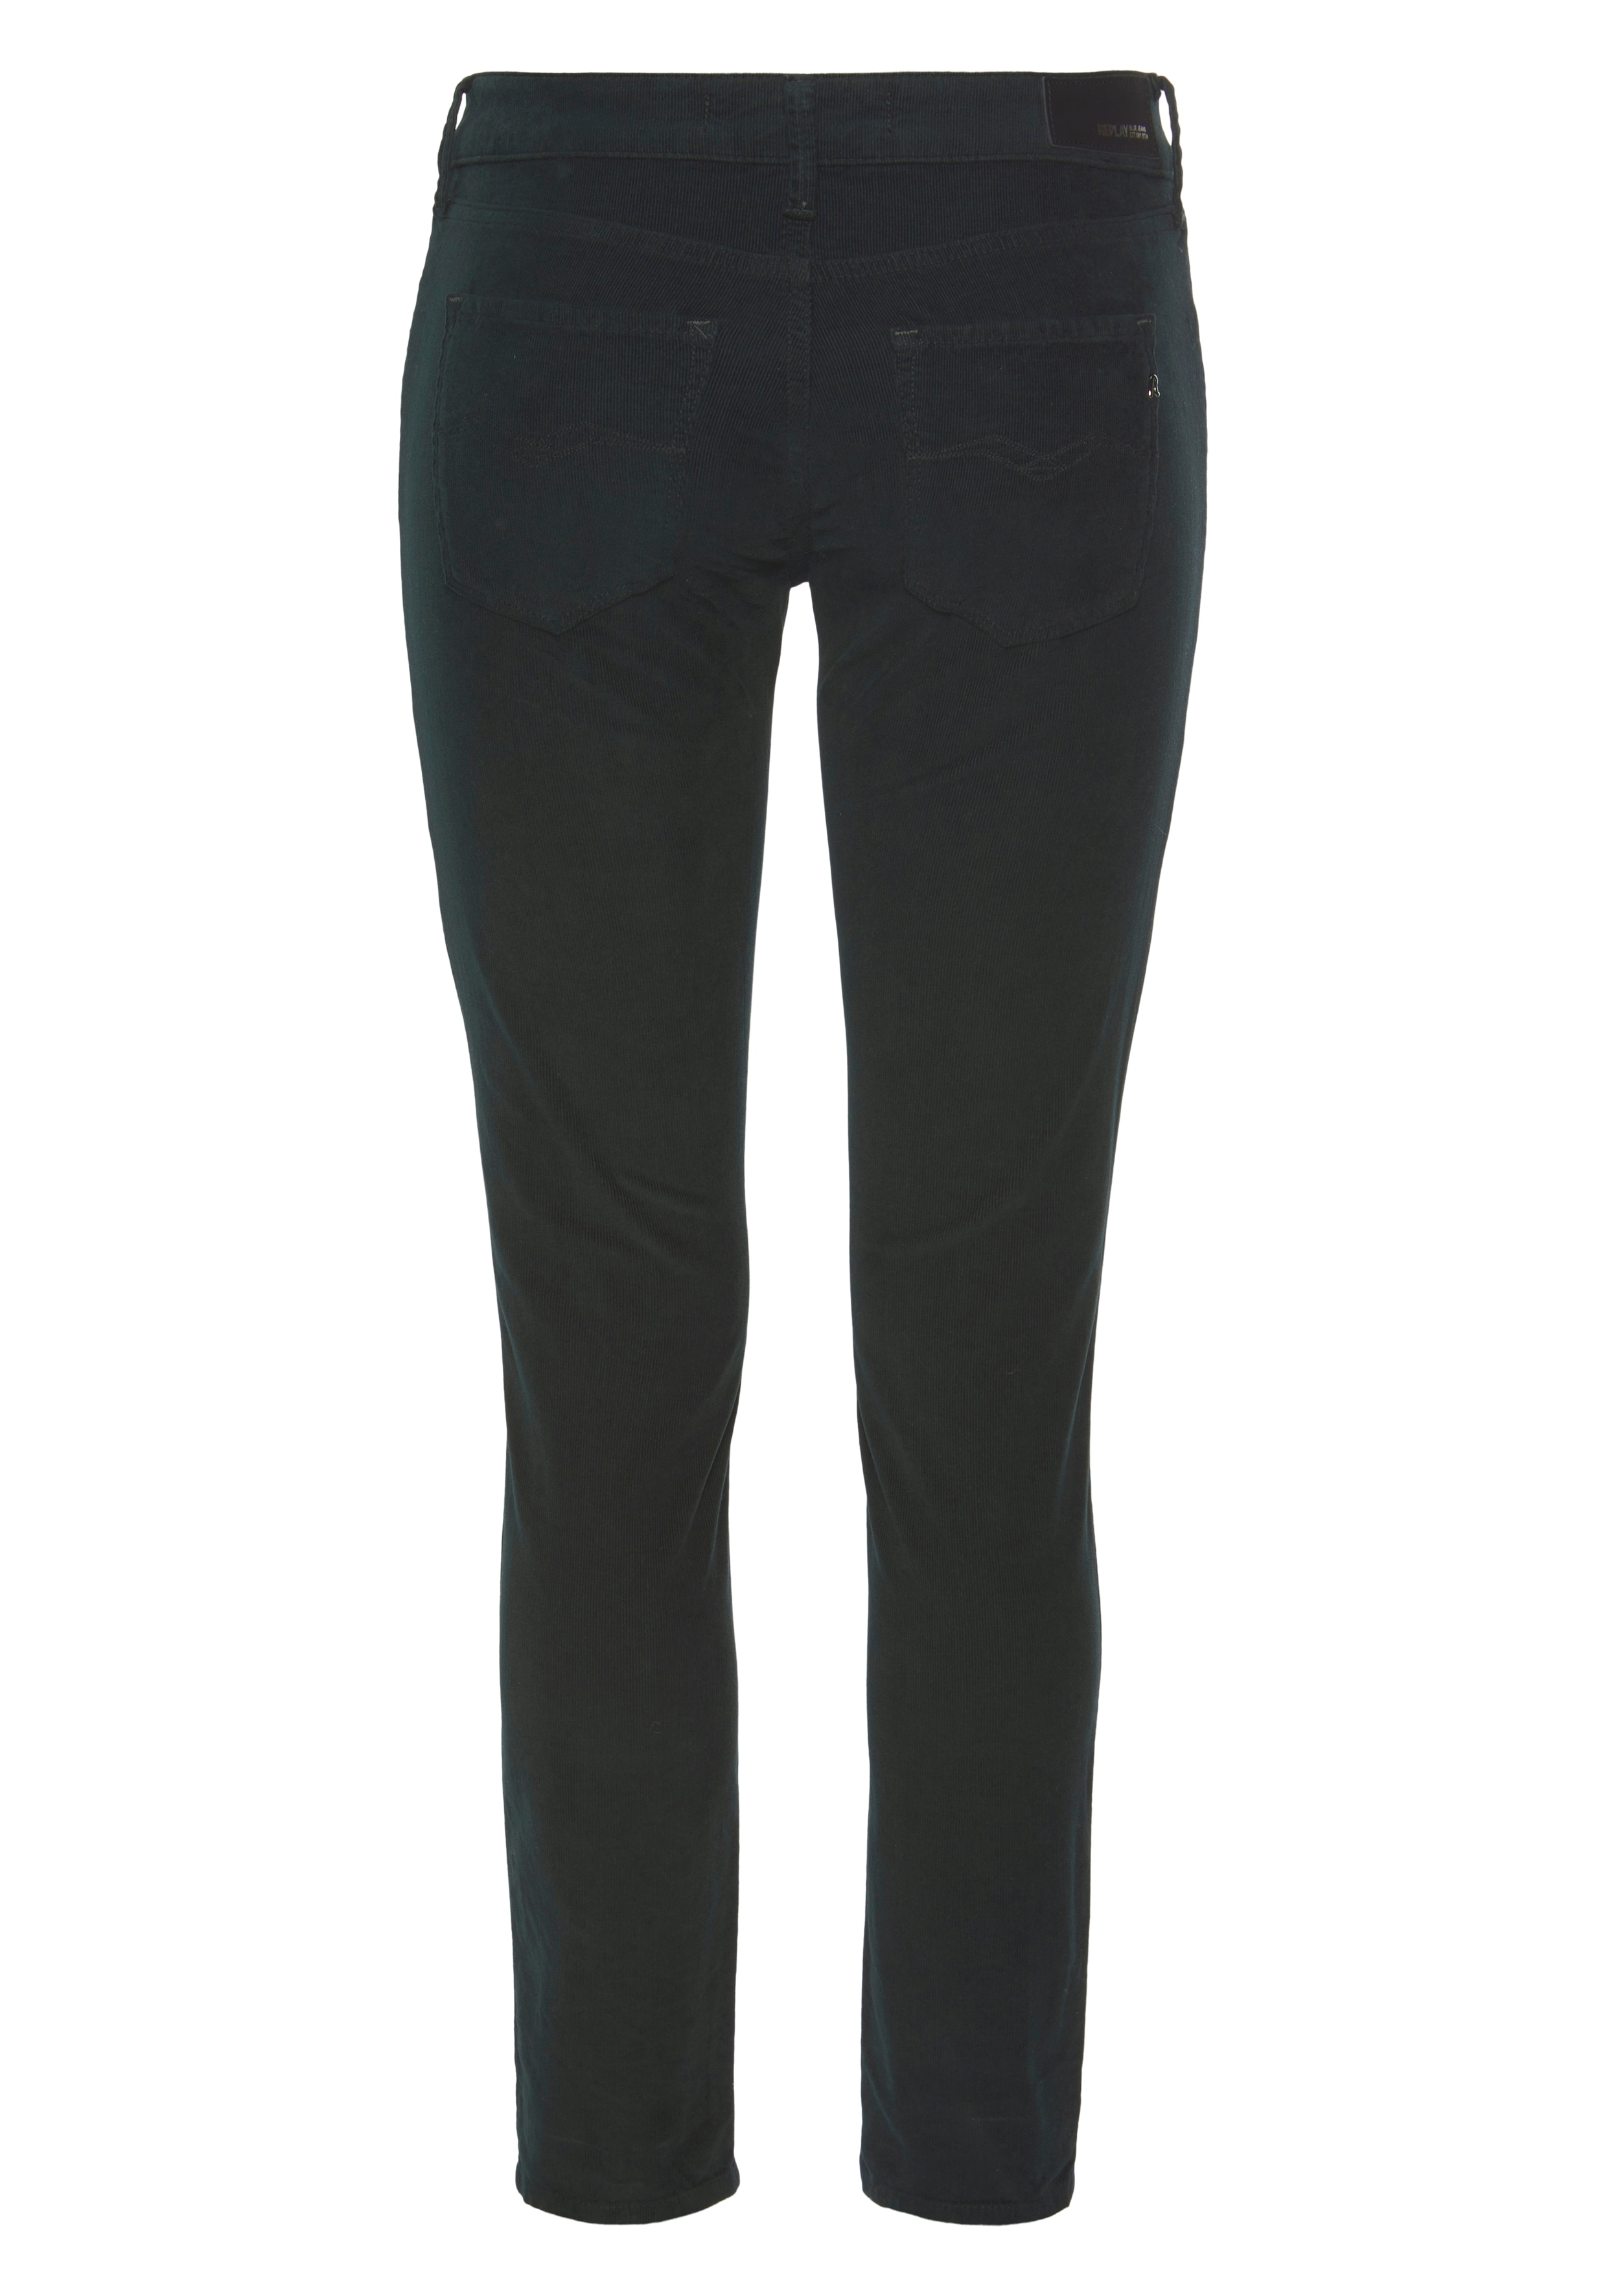 replay -  Cordhose New Luz, coole Skinny in softer Feincord-Stretch-Qualität